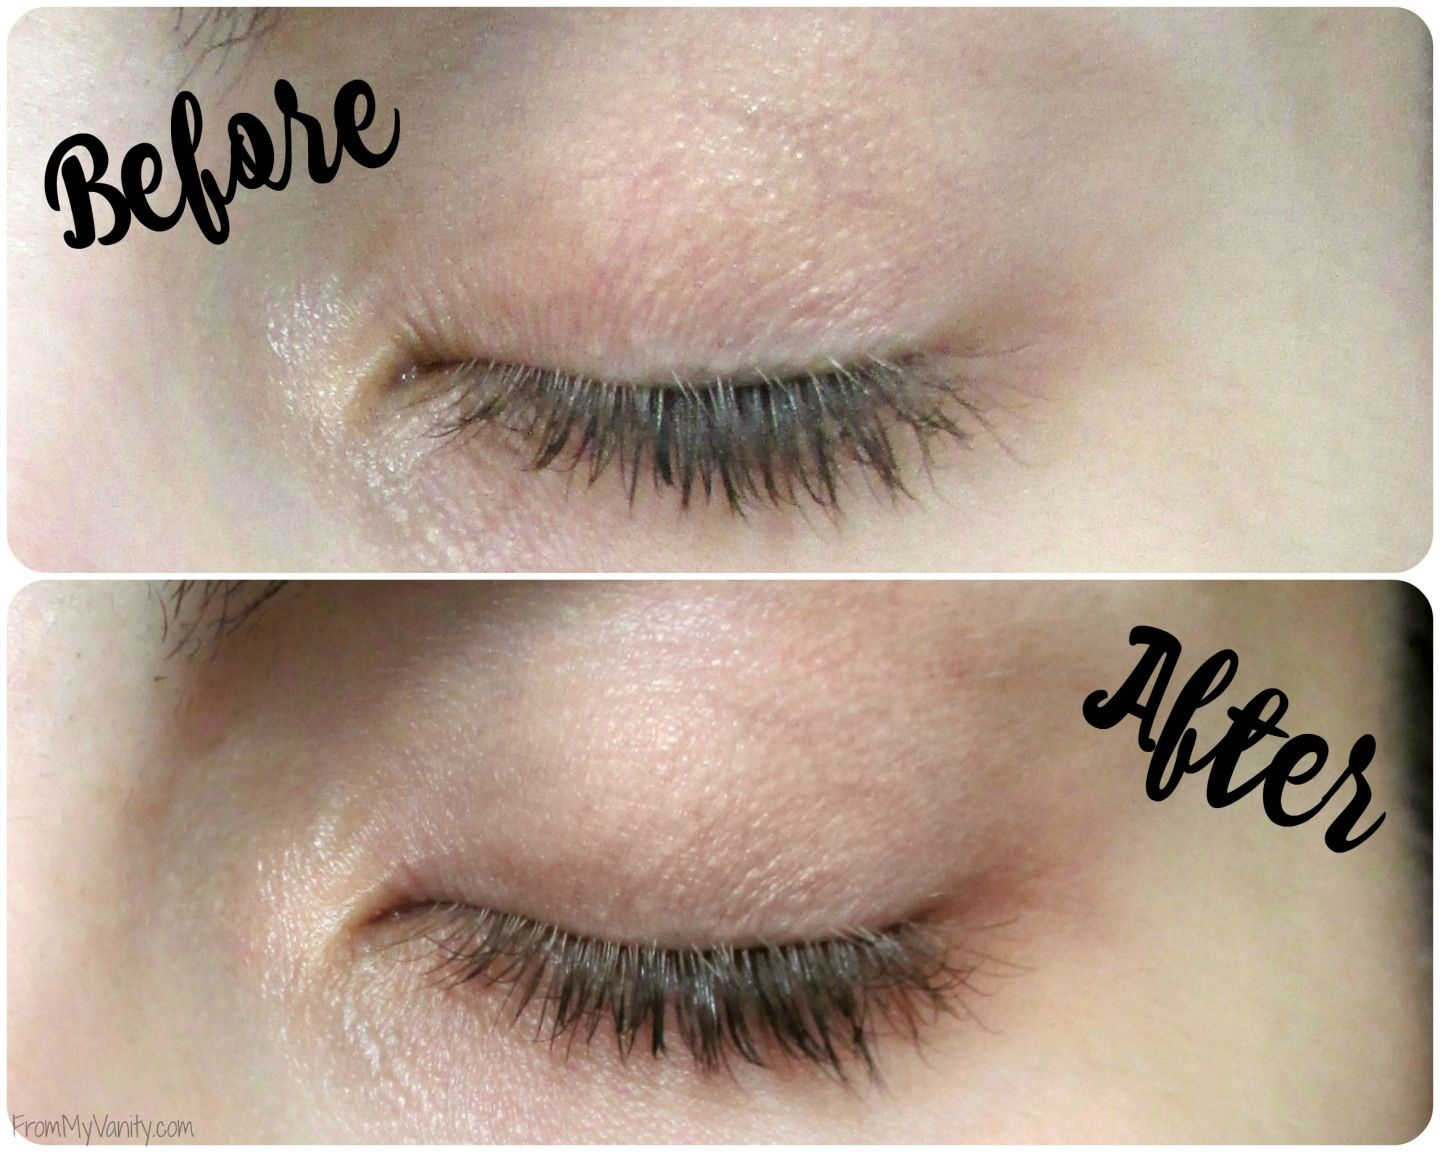 7c9c345f15b Grande Lash MD's GrandeLASH, GradePRIMER, and GrandeMASCARA Review //  Before and After Pictures // 4 Weeks // #GrandeLashMD #LongLashes //  FromMyVanity.com